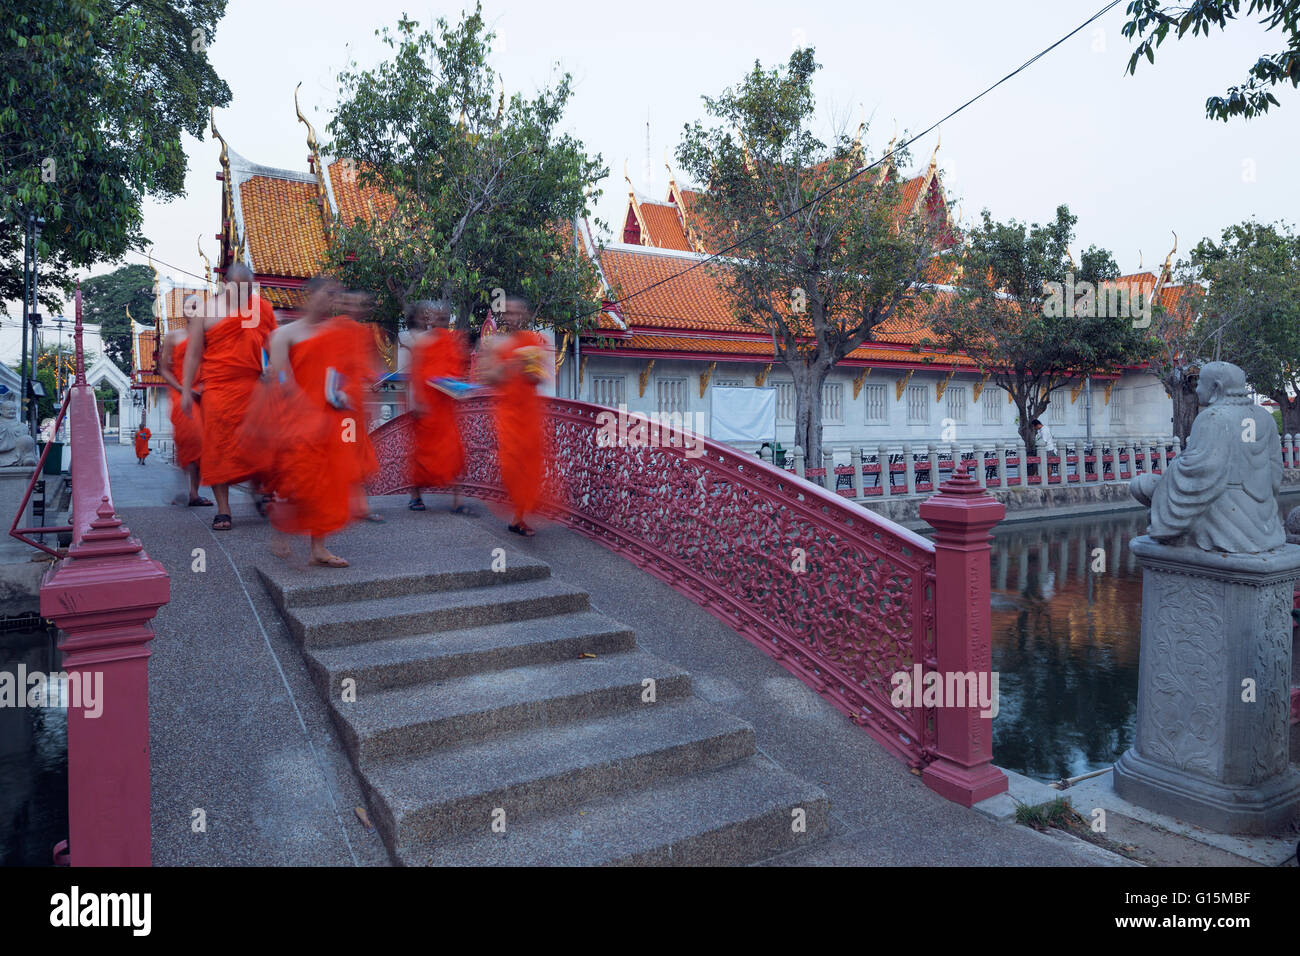 Monks in saffron robes, Wat Benchamabophit (The Marble Temple), Bangkok, Thailand, Southeast Asia, Asia - Stock Image